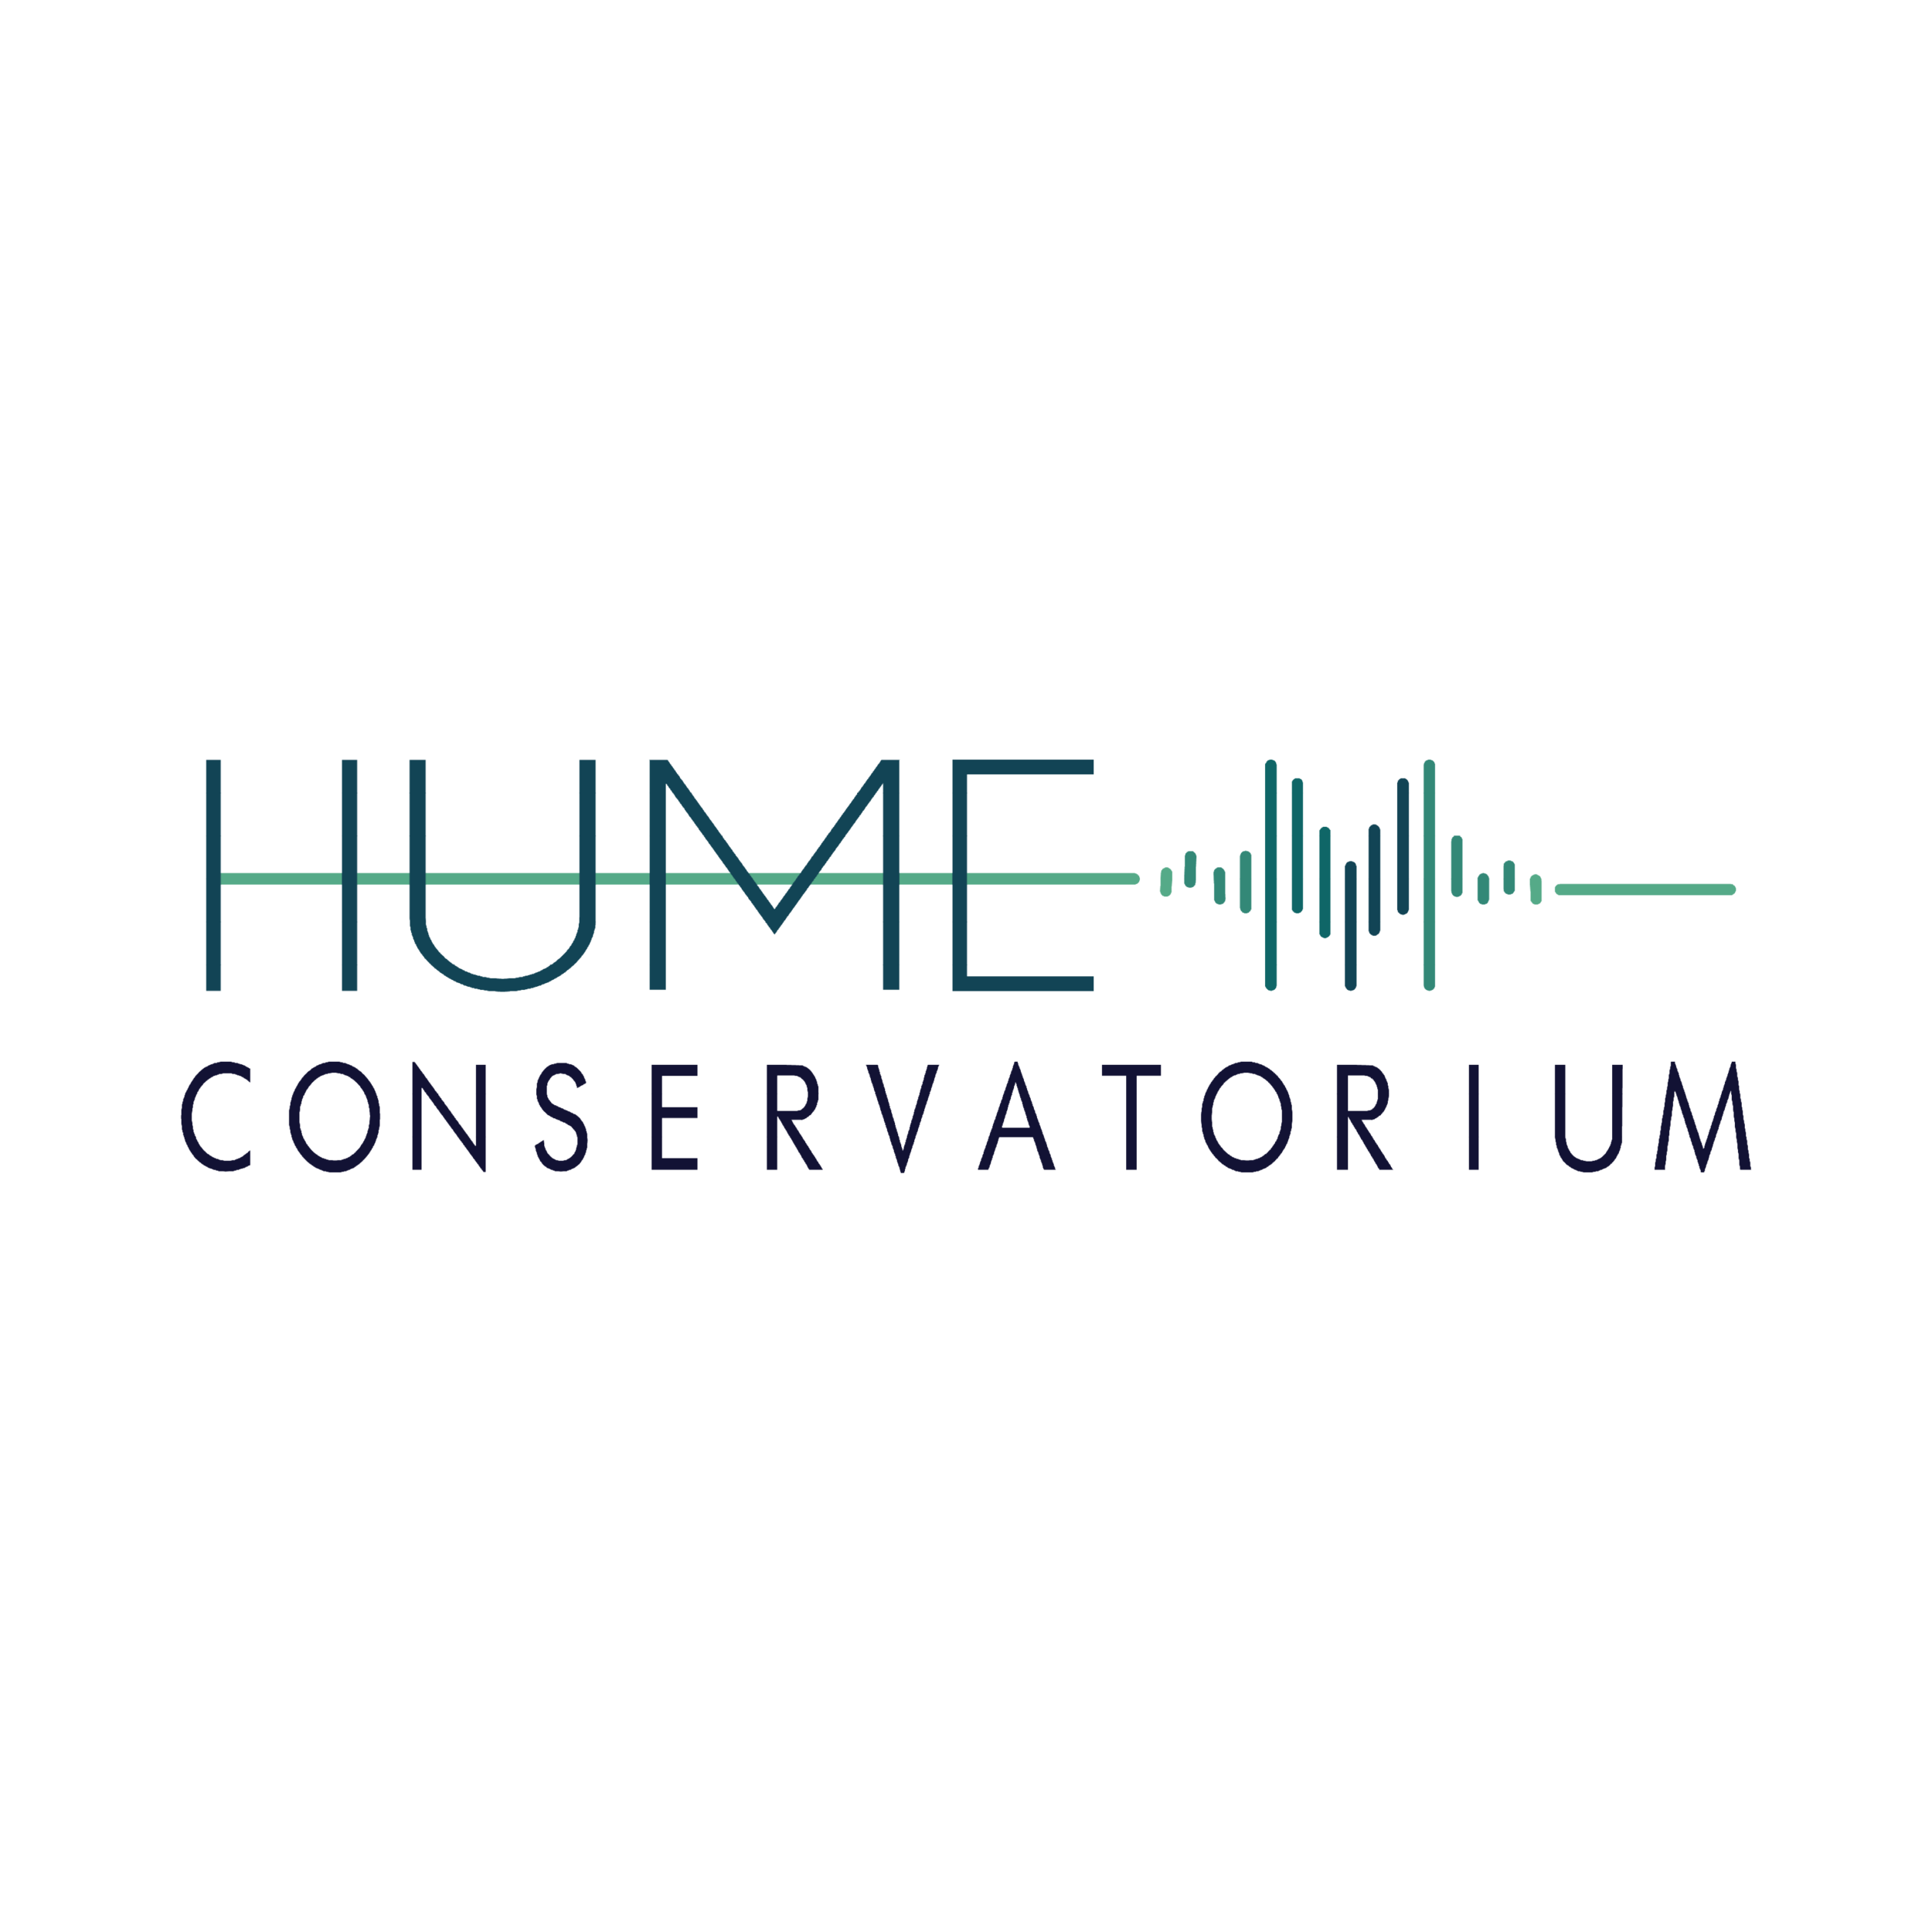 Hume Conservatorium - Small Square.png